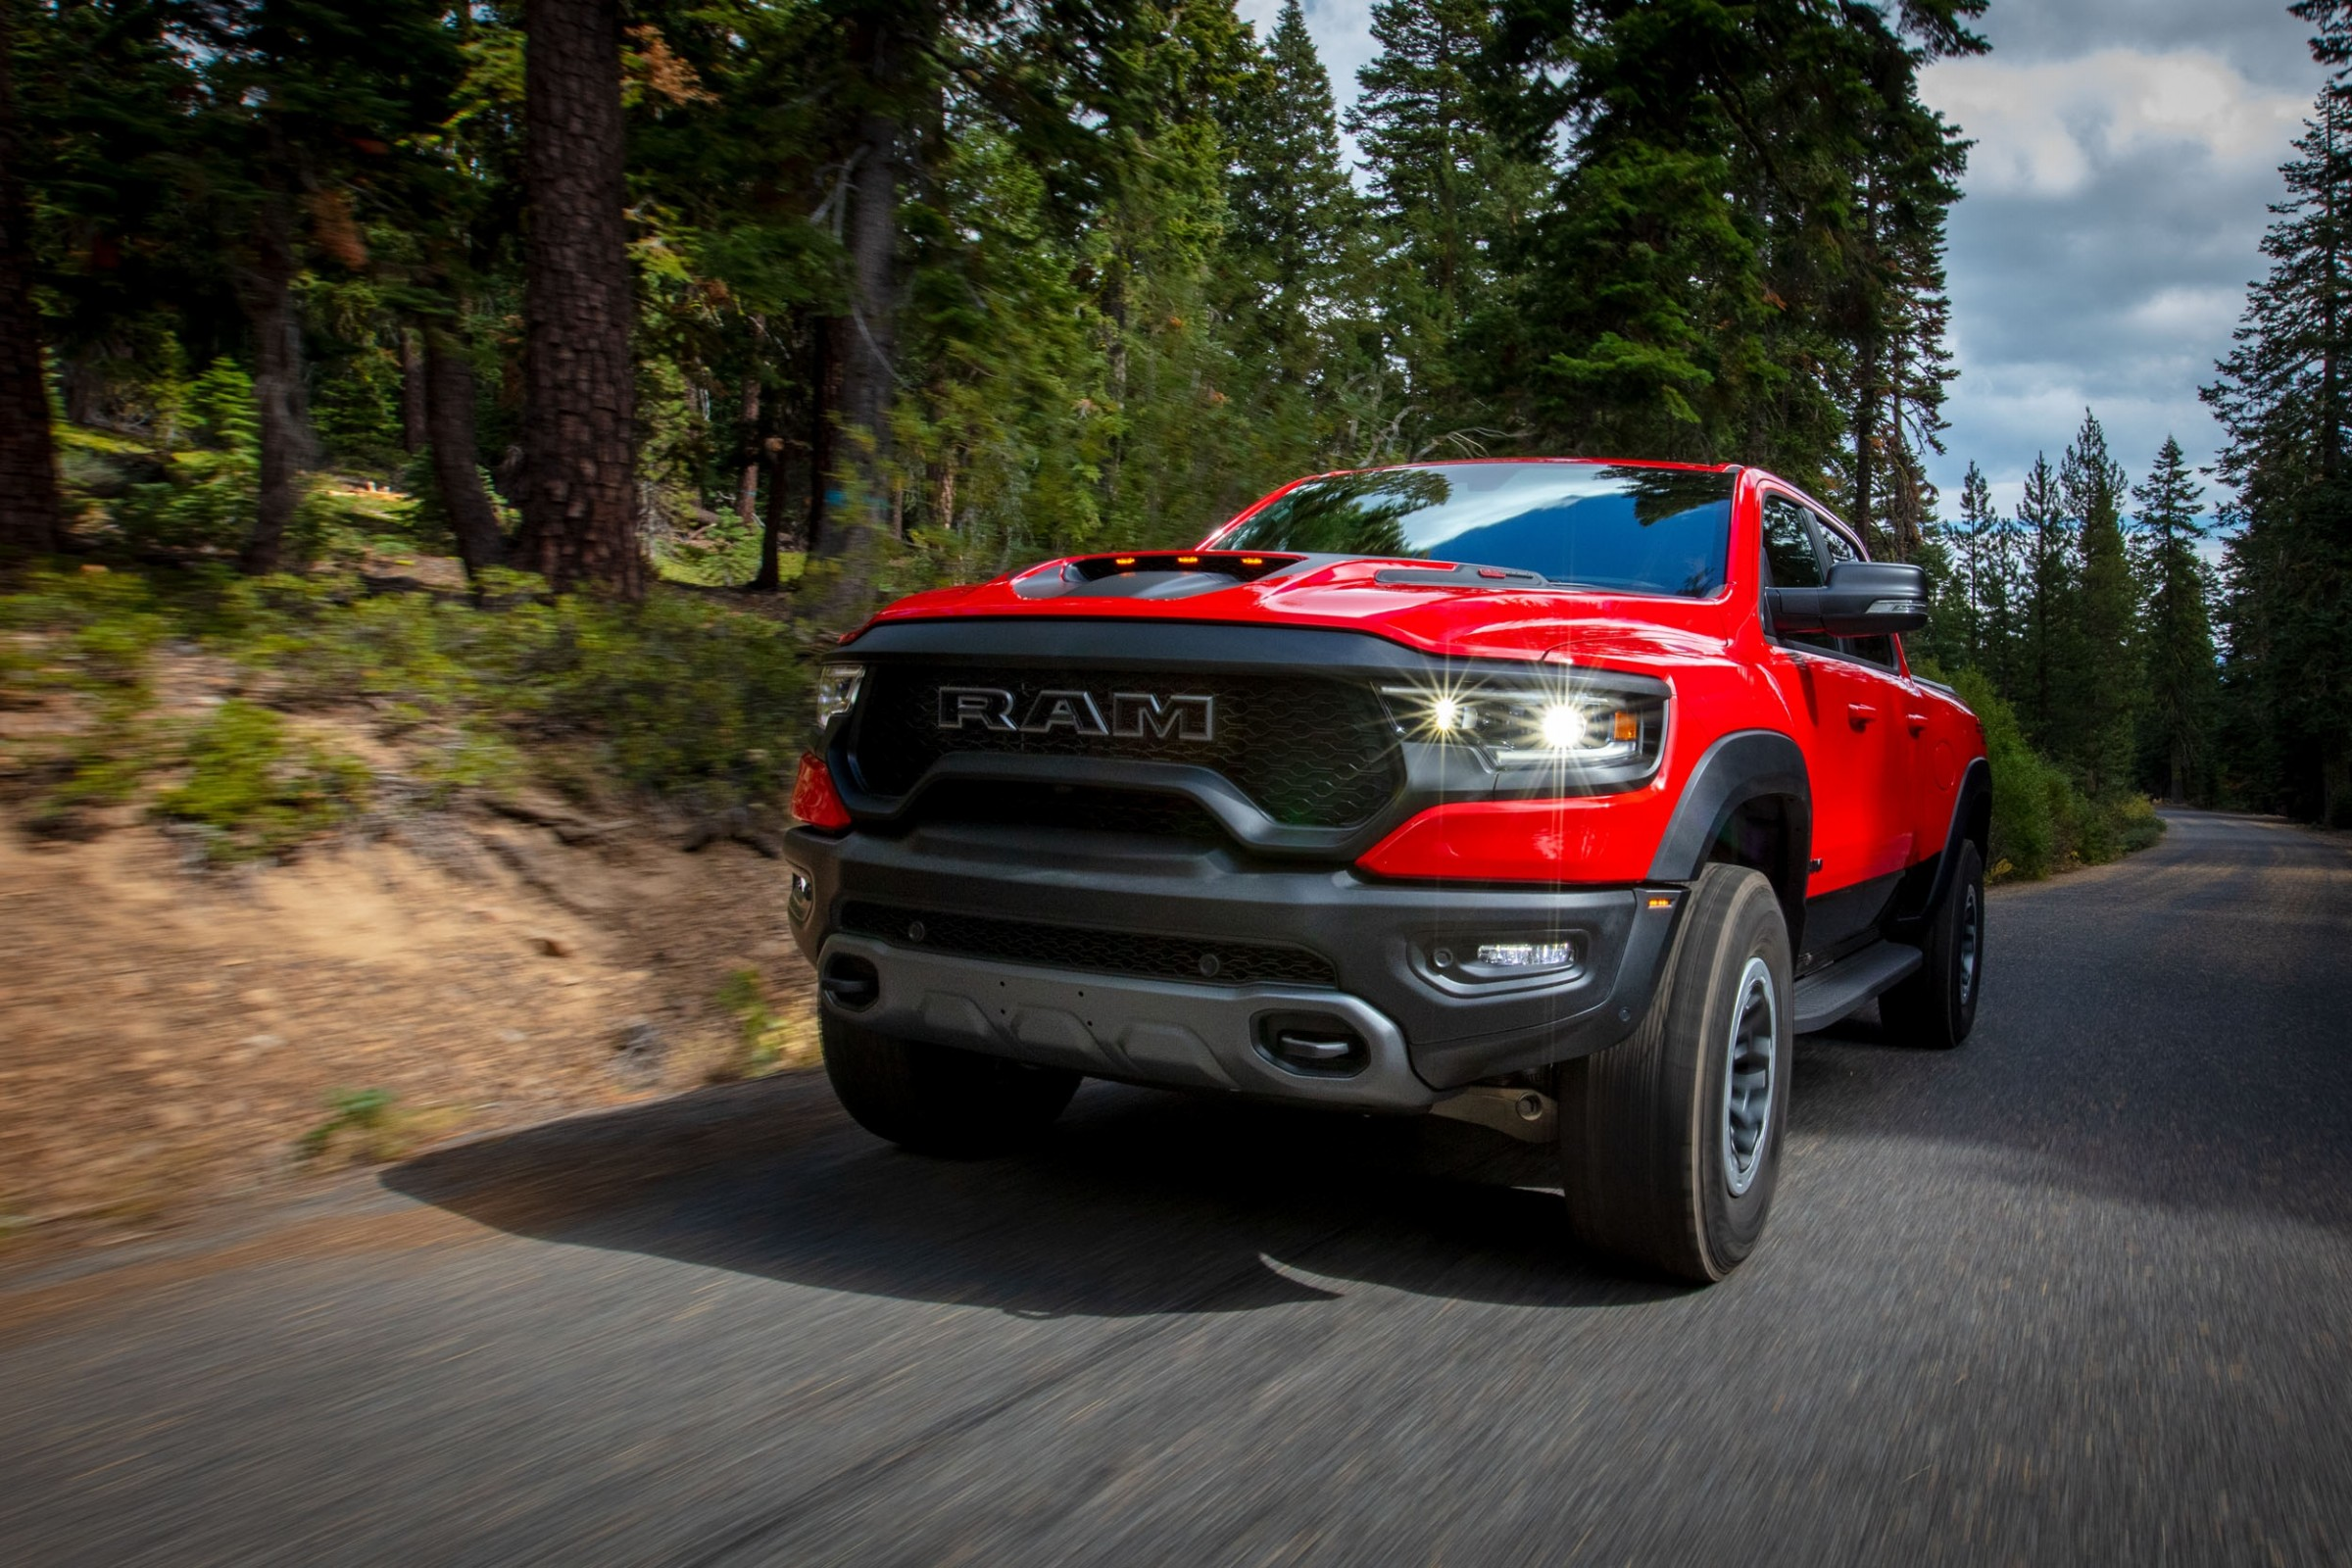 Specifications and price of 2021 Ram 1500 TRX in Nigeria